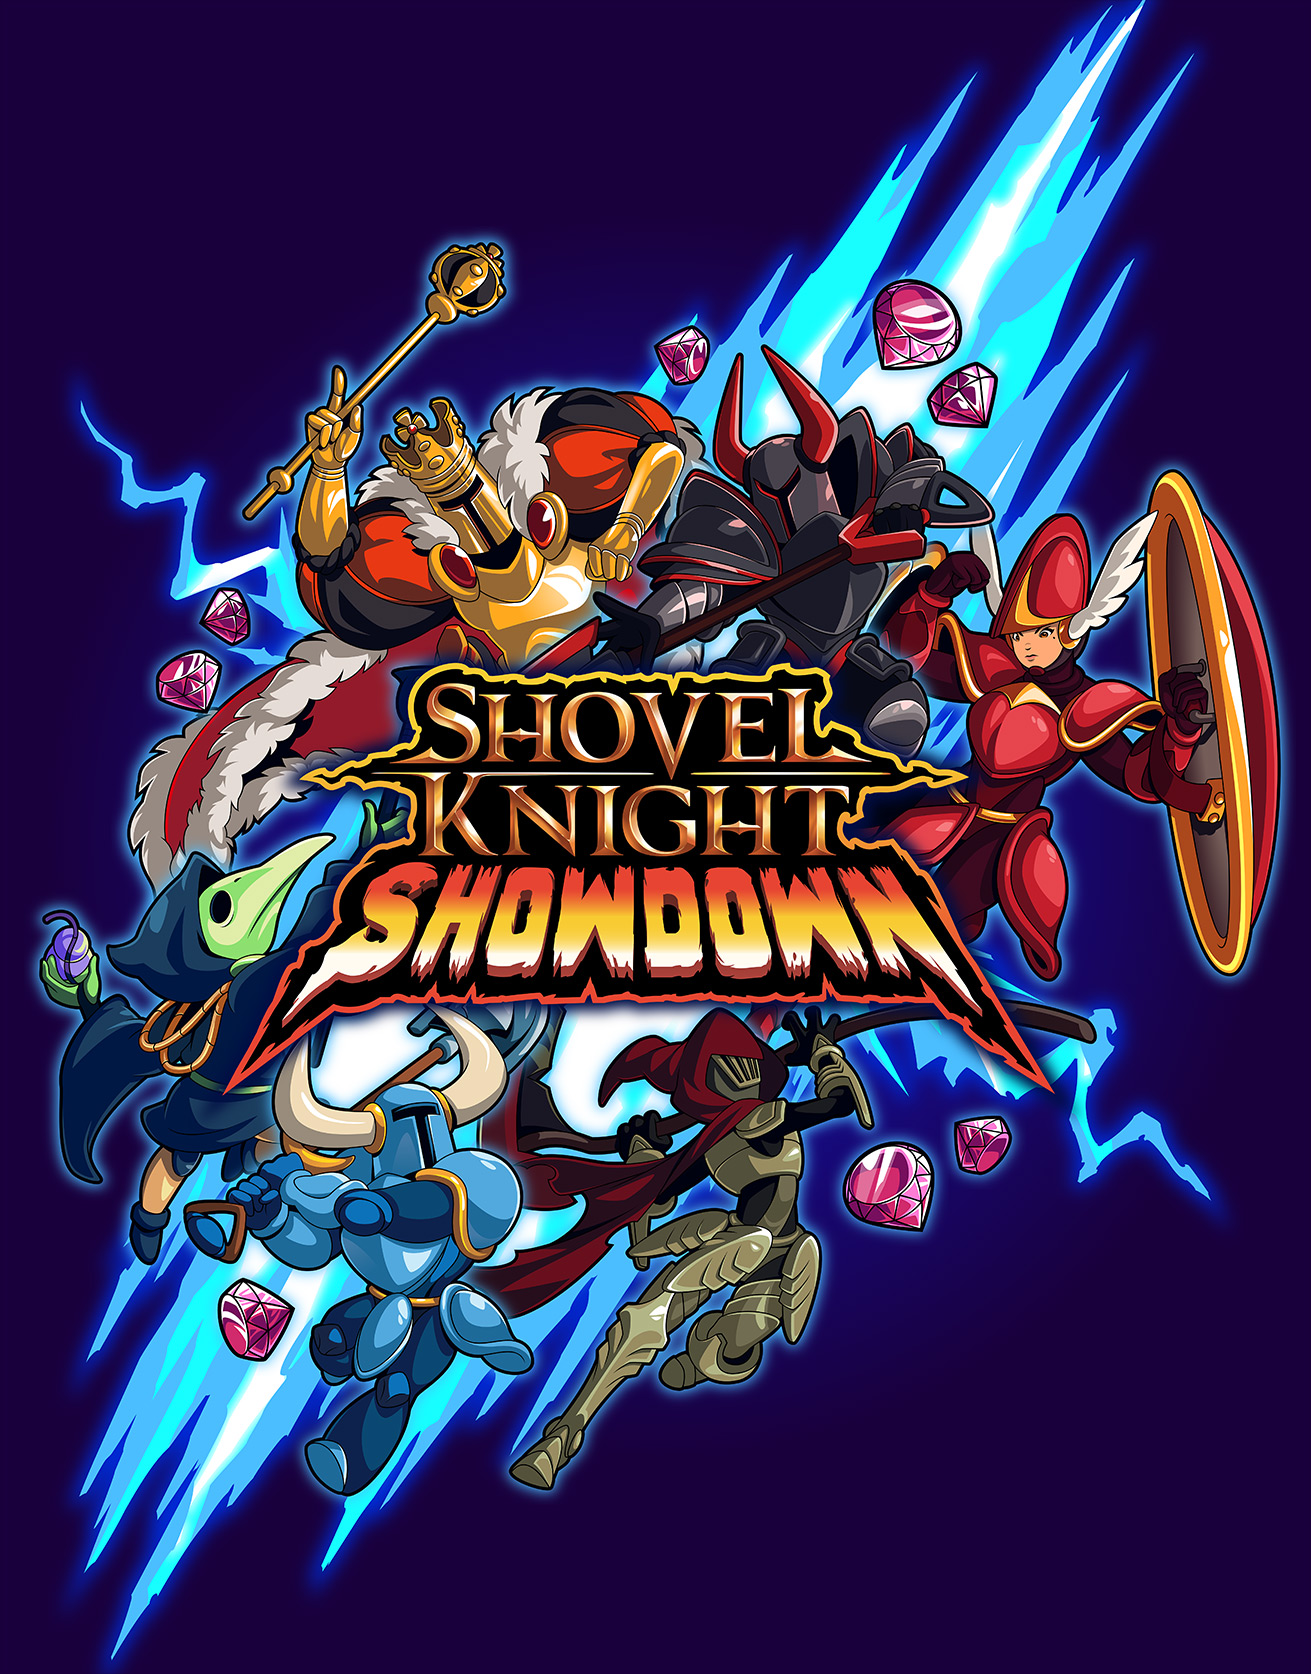 Shovel Knight: Showdown